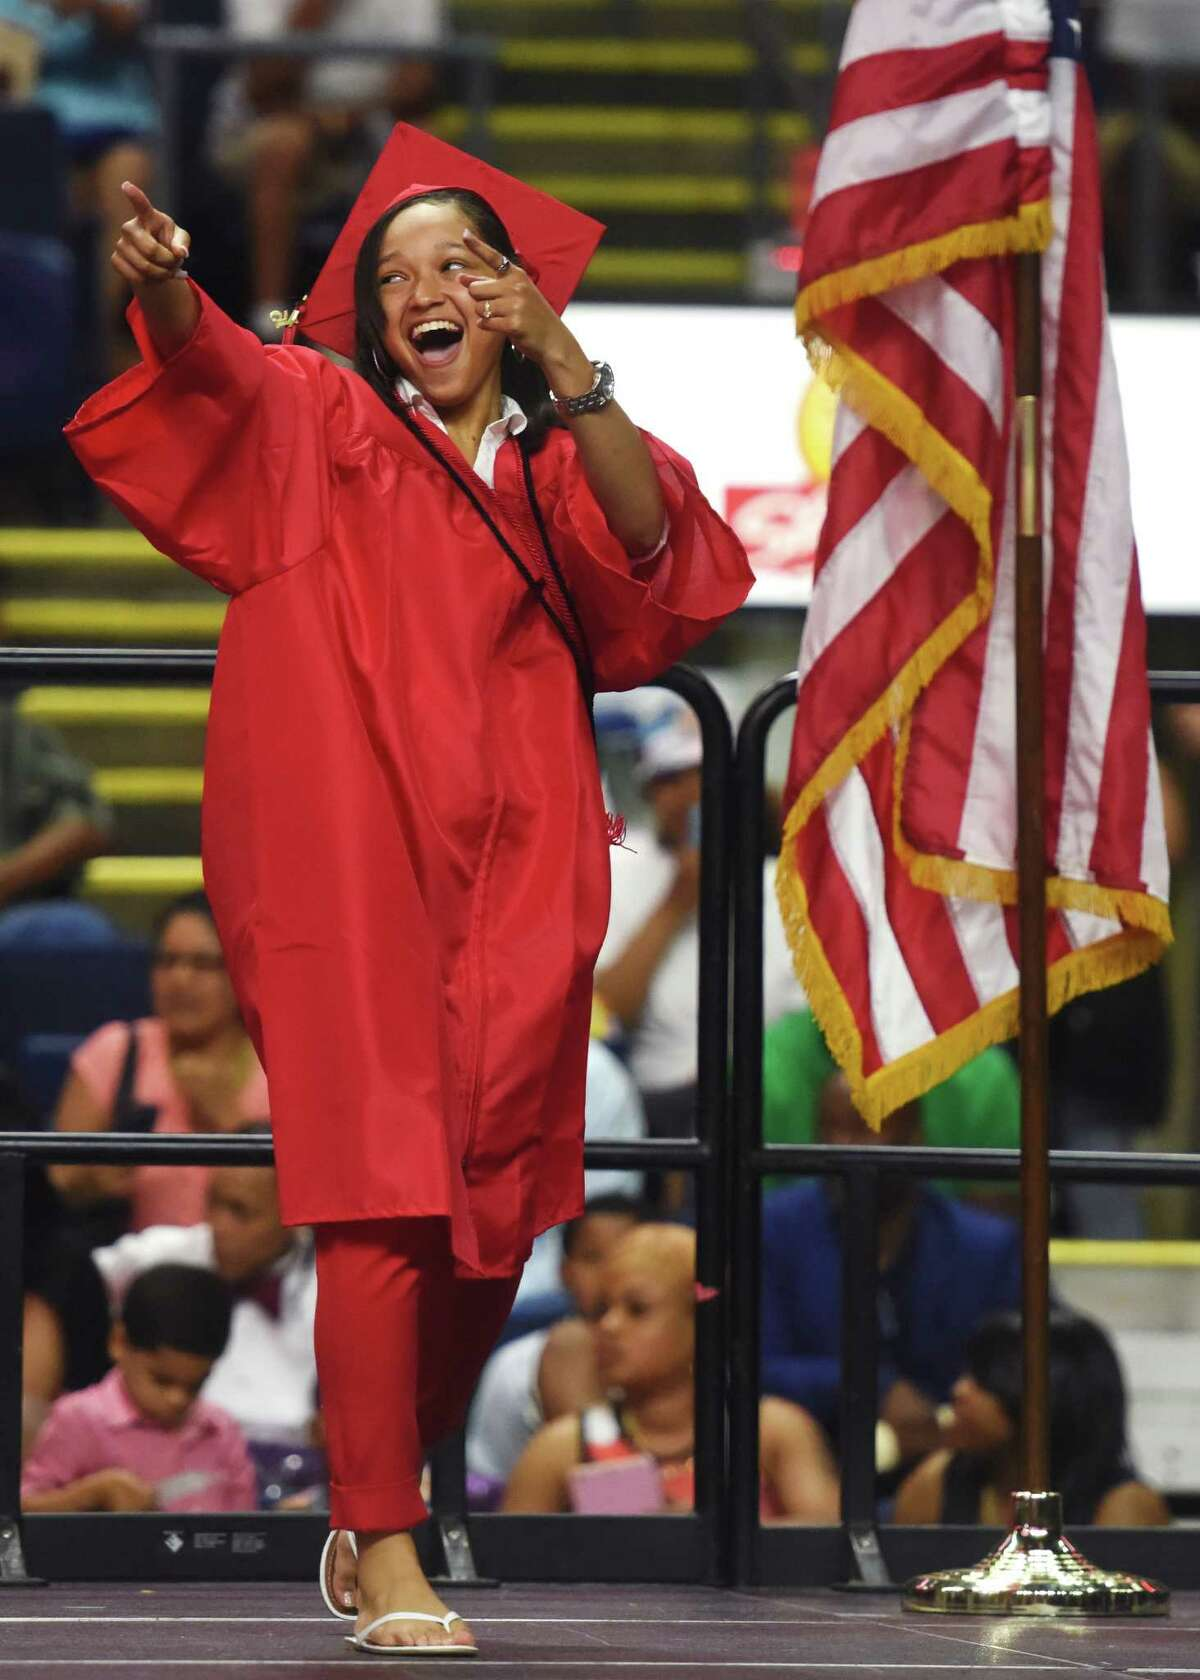 Graduating senior Mariah Wilson walks across the stage to get her diploma during the Bridgeport Central High School 2015 graduation ceremony at Webster Bank Arena in Bridgeport, Conn. Monday, June 22, 2015.